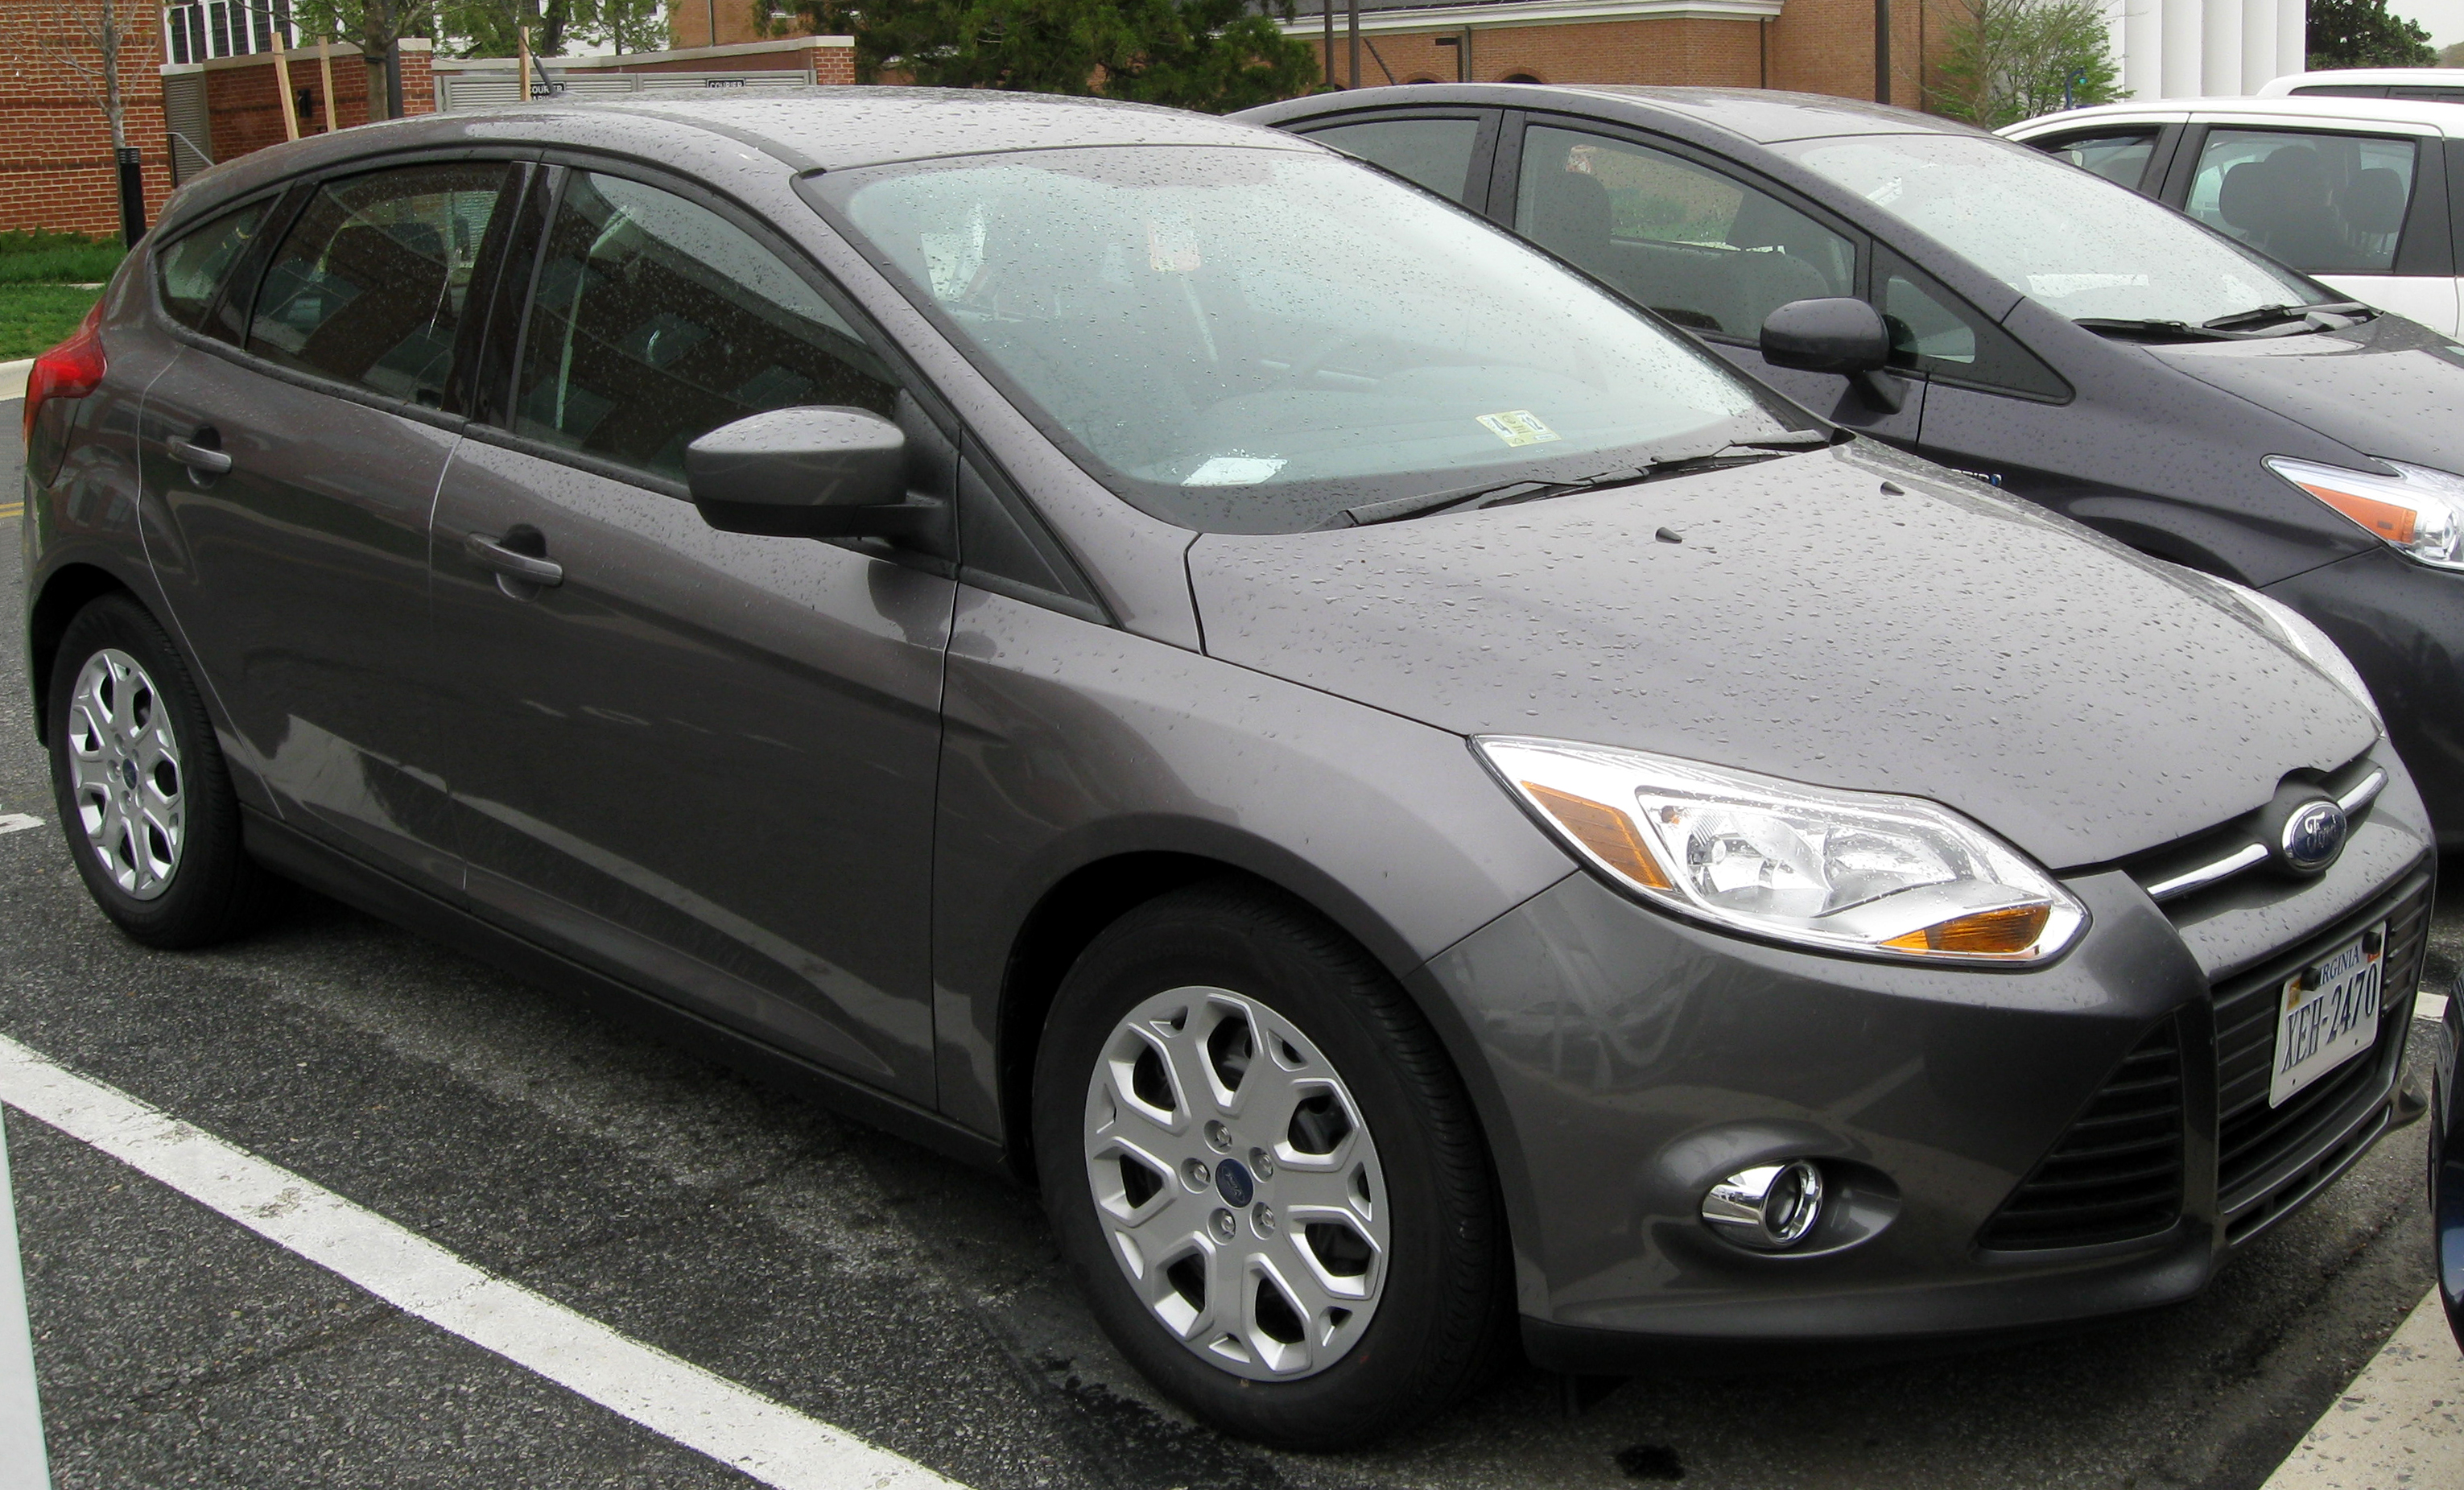 2011 ford focus gray 200 interior and exterior images. Black Bedroom Furniture Sets. Home Design Ideas